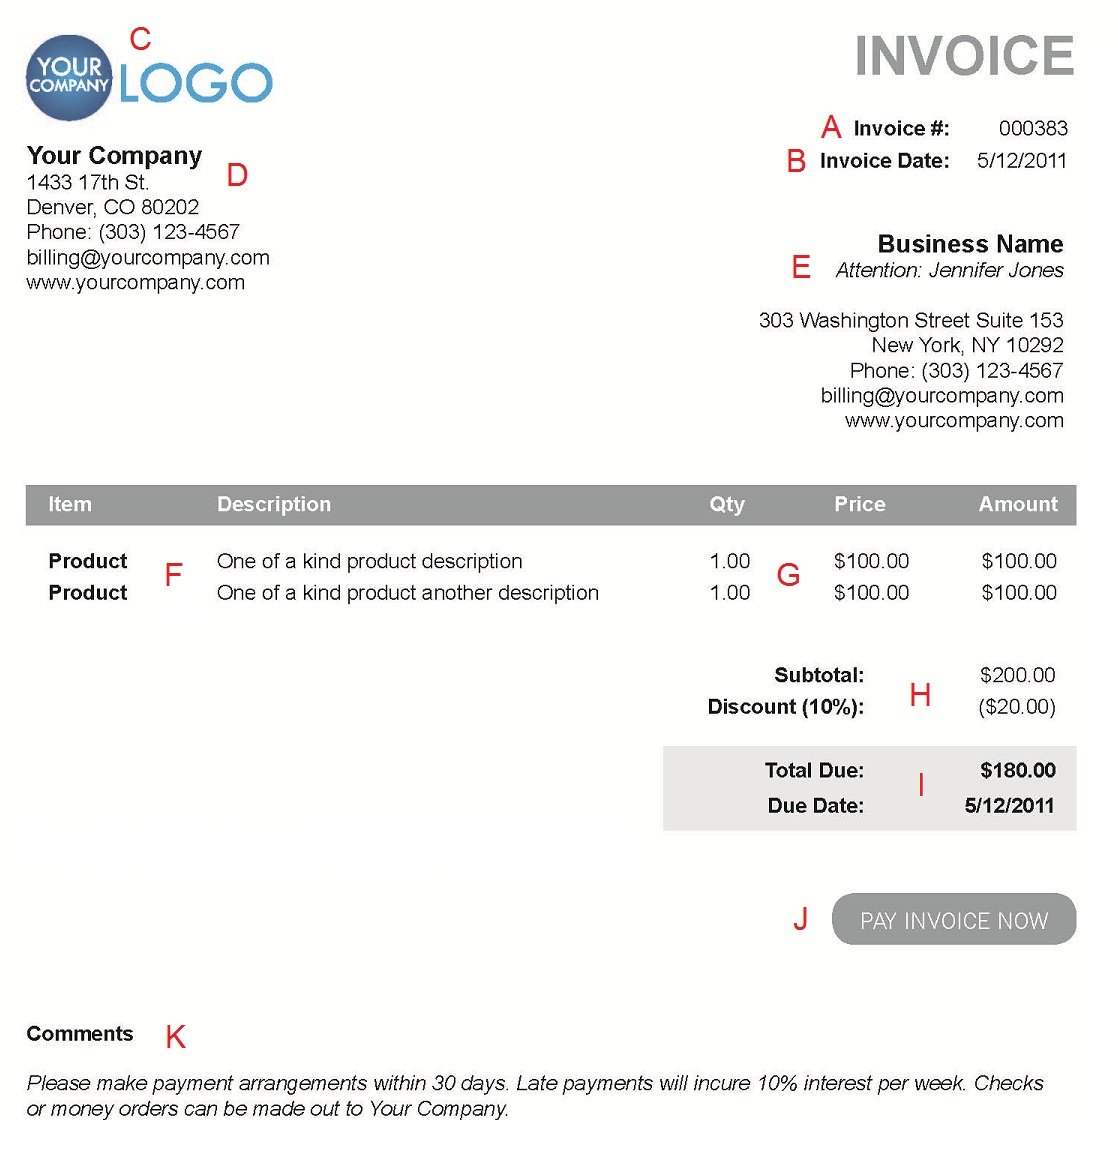 Centralasianshepherdus  Marvellous The  Different Sections Of An Electronic Payment Invoice With Licious A  With Adorable Template Receipt Also Certified Mail With Return Receipt Cost In Addition Receipt Catcher And Enterprise Toll Receipt As Well As Receipt Rolls Additionally Mac Return Policy Without Receipt From Paysimplecom With Centralasianshepherdus  Licious The  Different Sections Of An Electronic Payment Invoice With Adorable A  And Marvellous Template Receipt Also Certified Mail With Return Receipt Cost In Addition Receipt Catcher From Paysimplecom